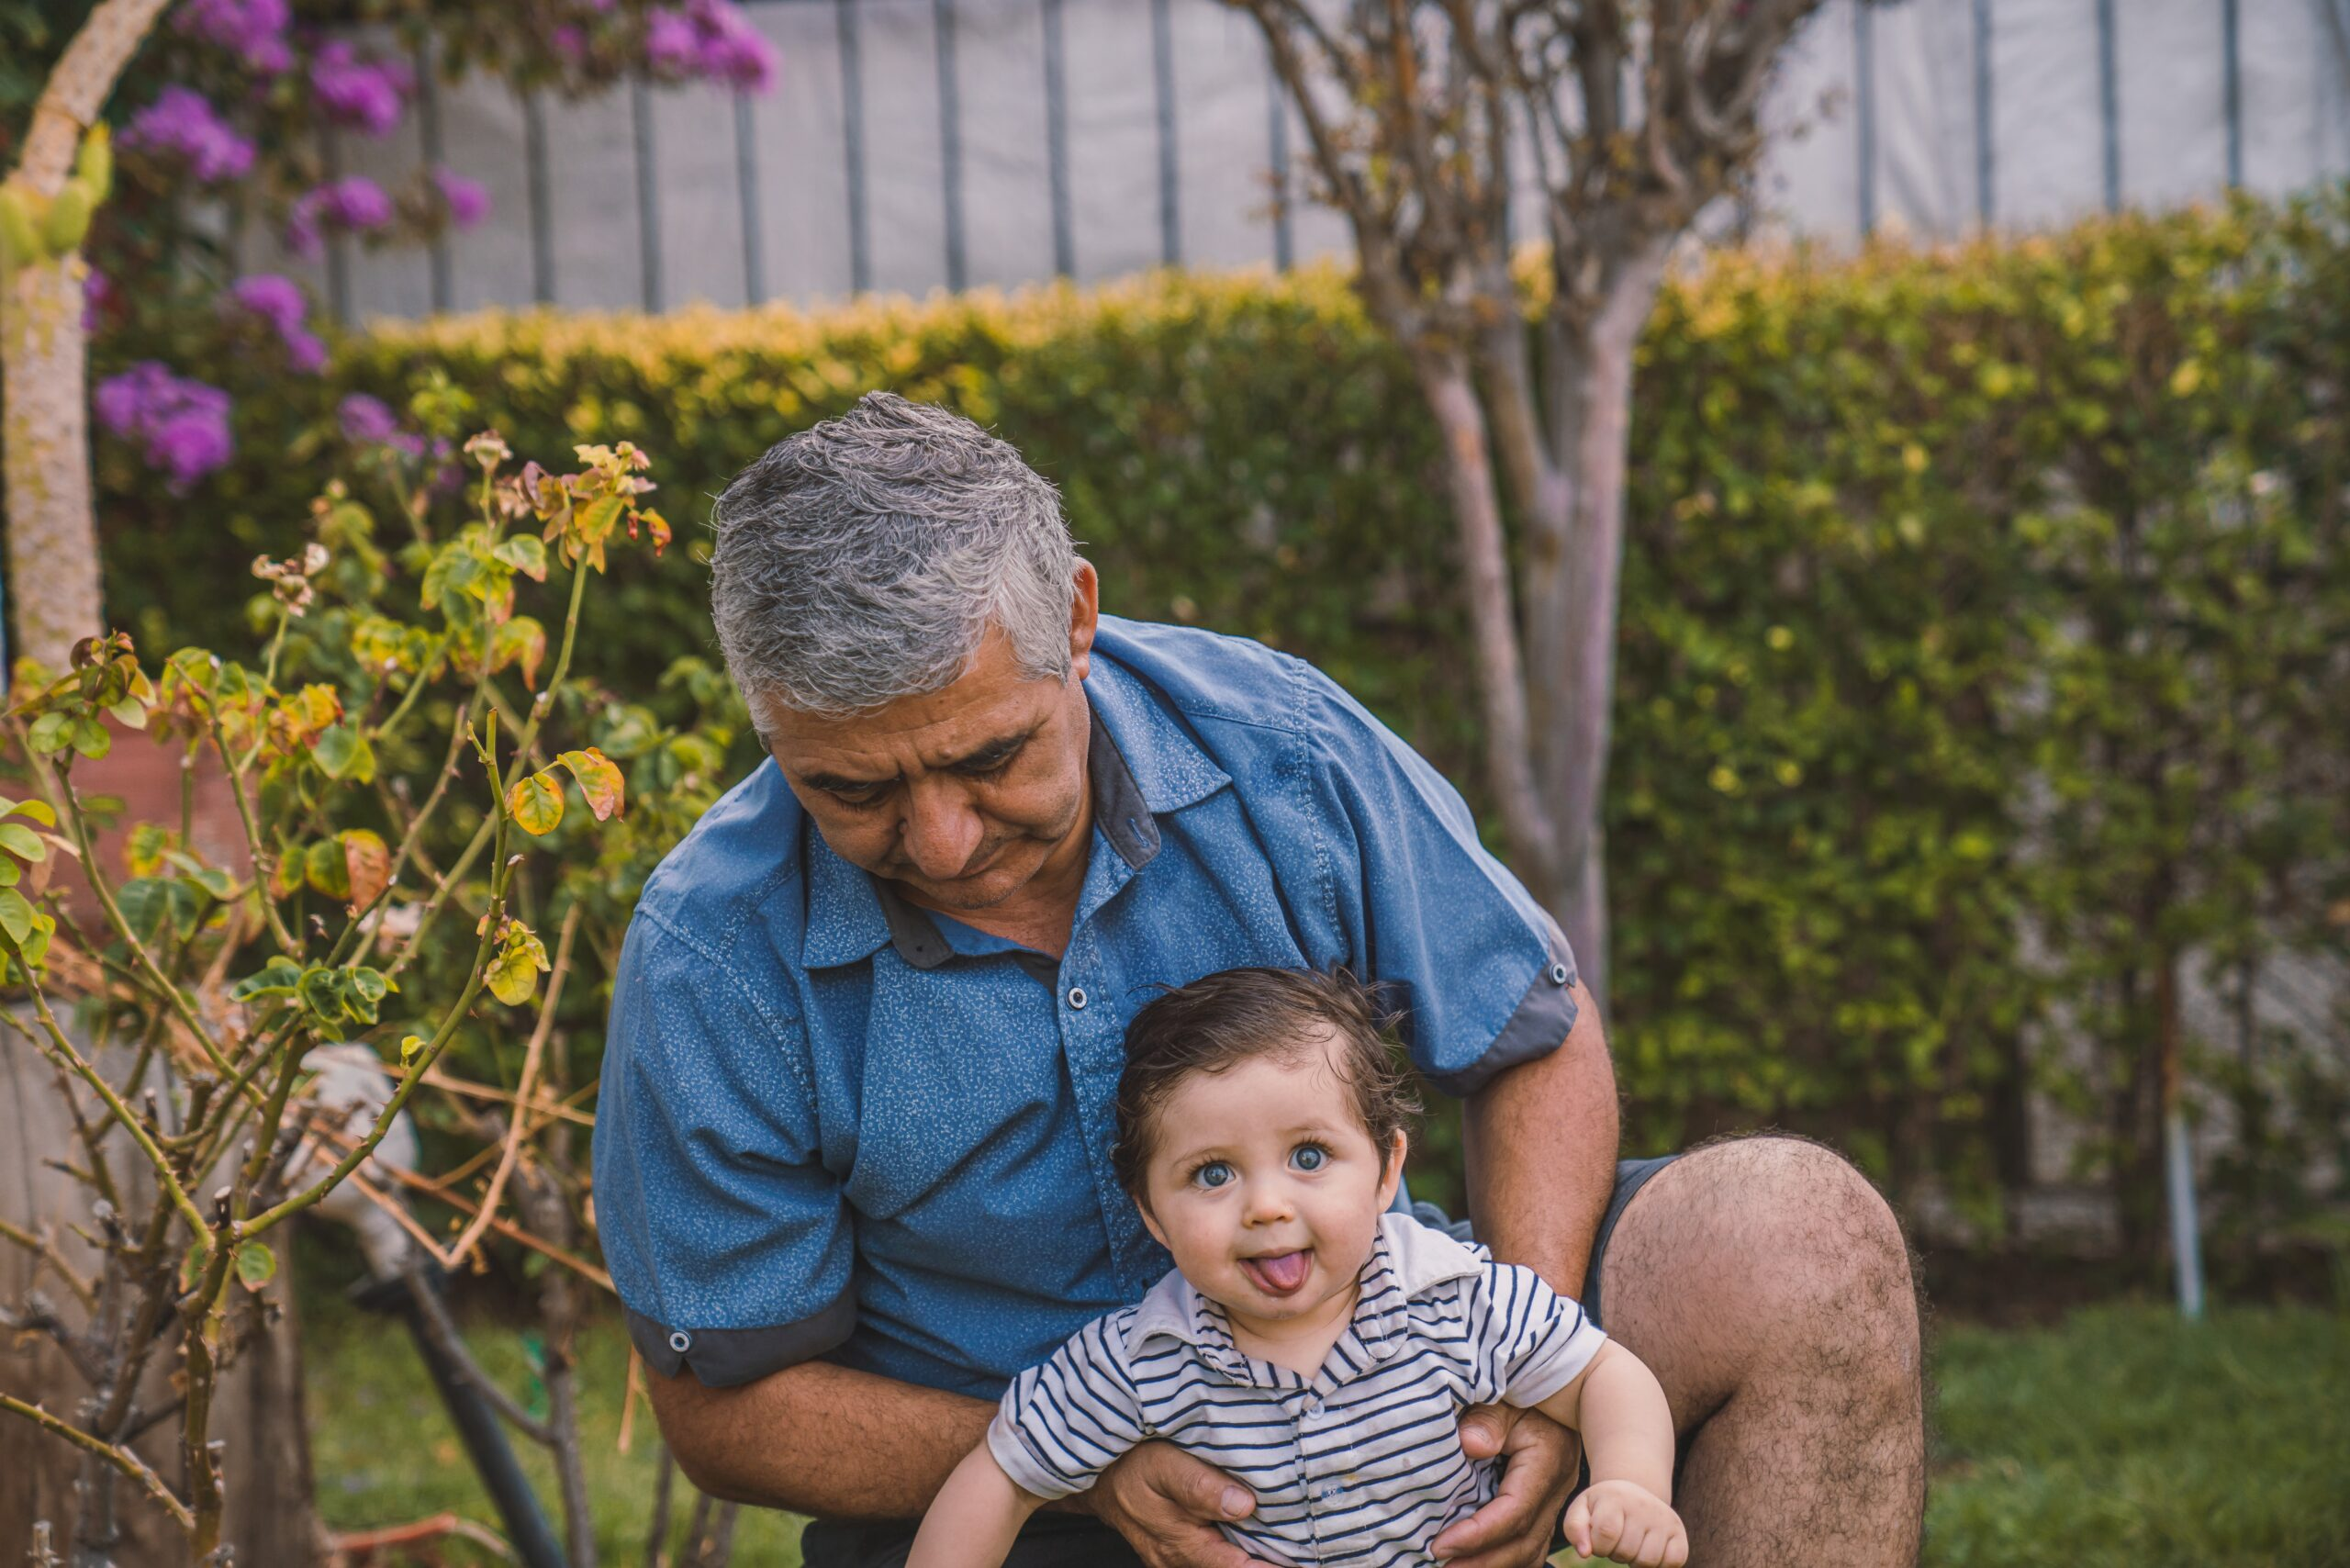 How to Find Boundaries as a Grandparent